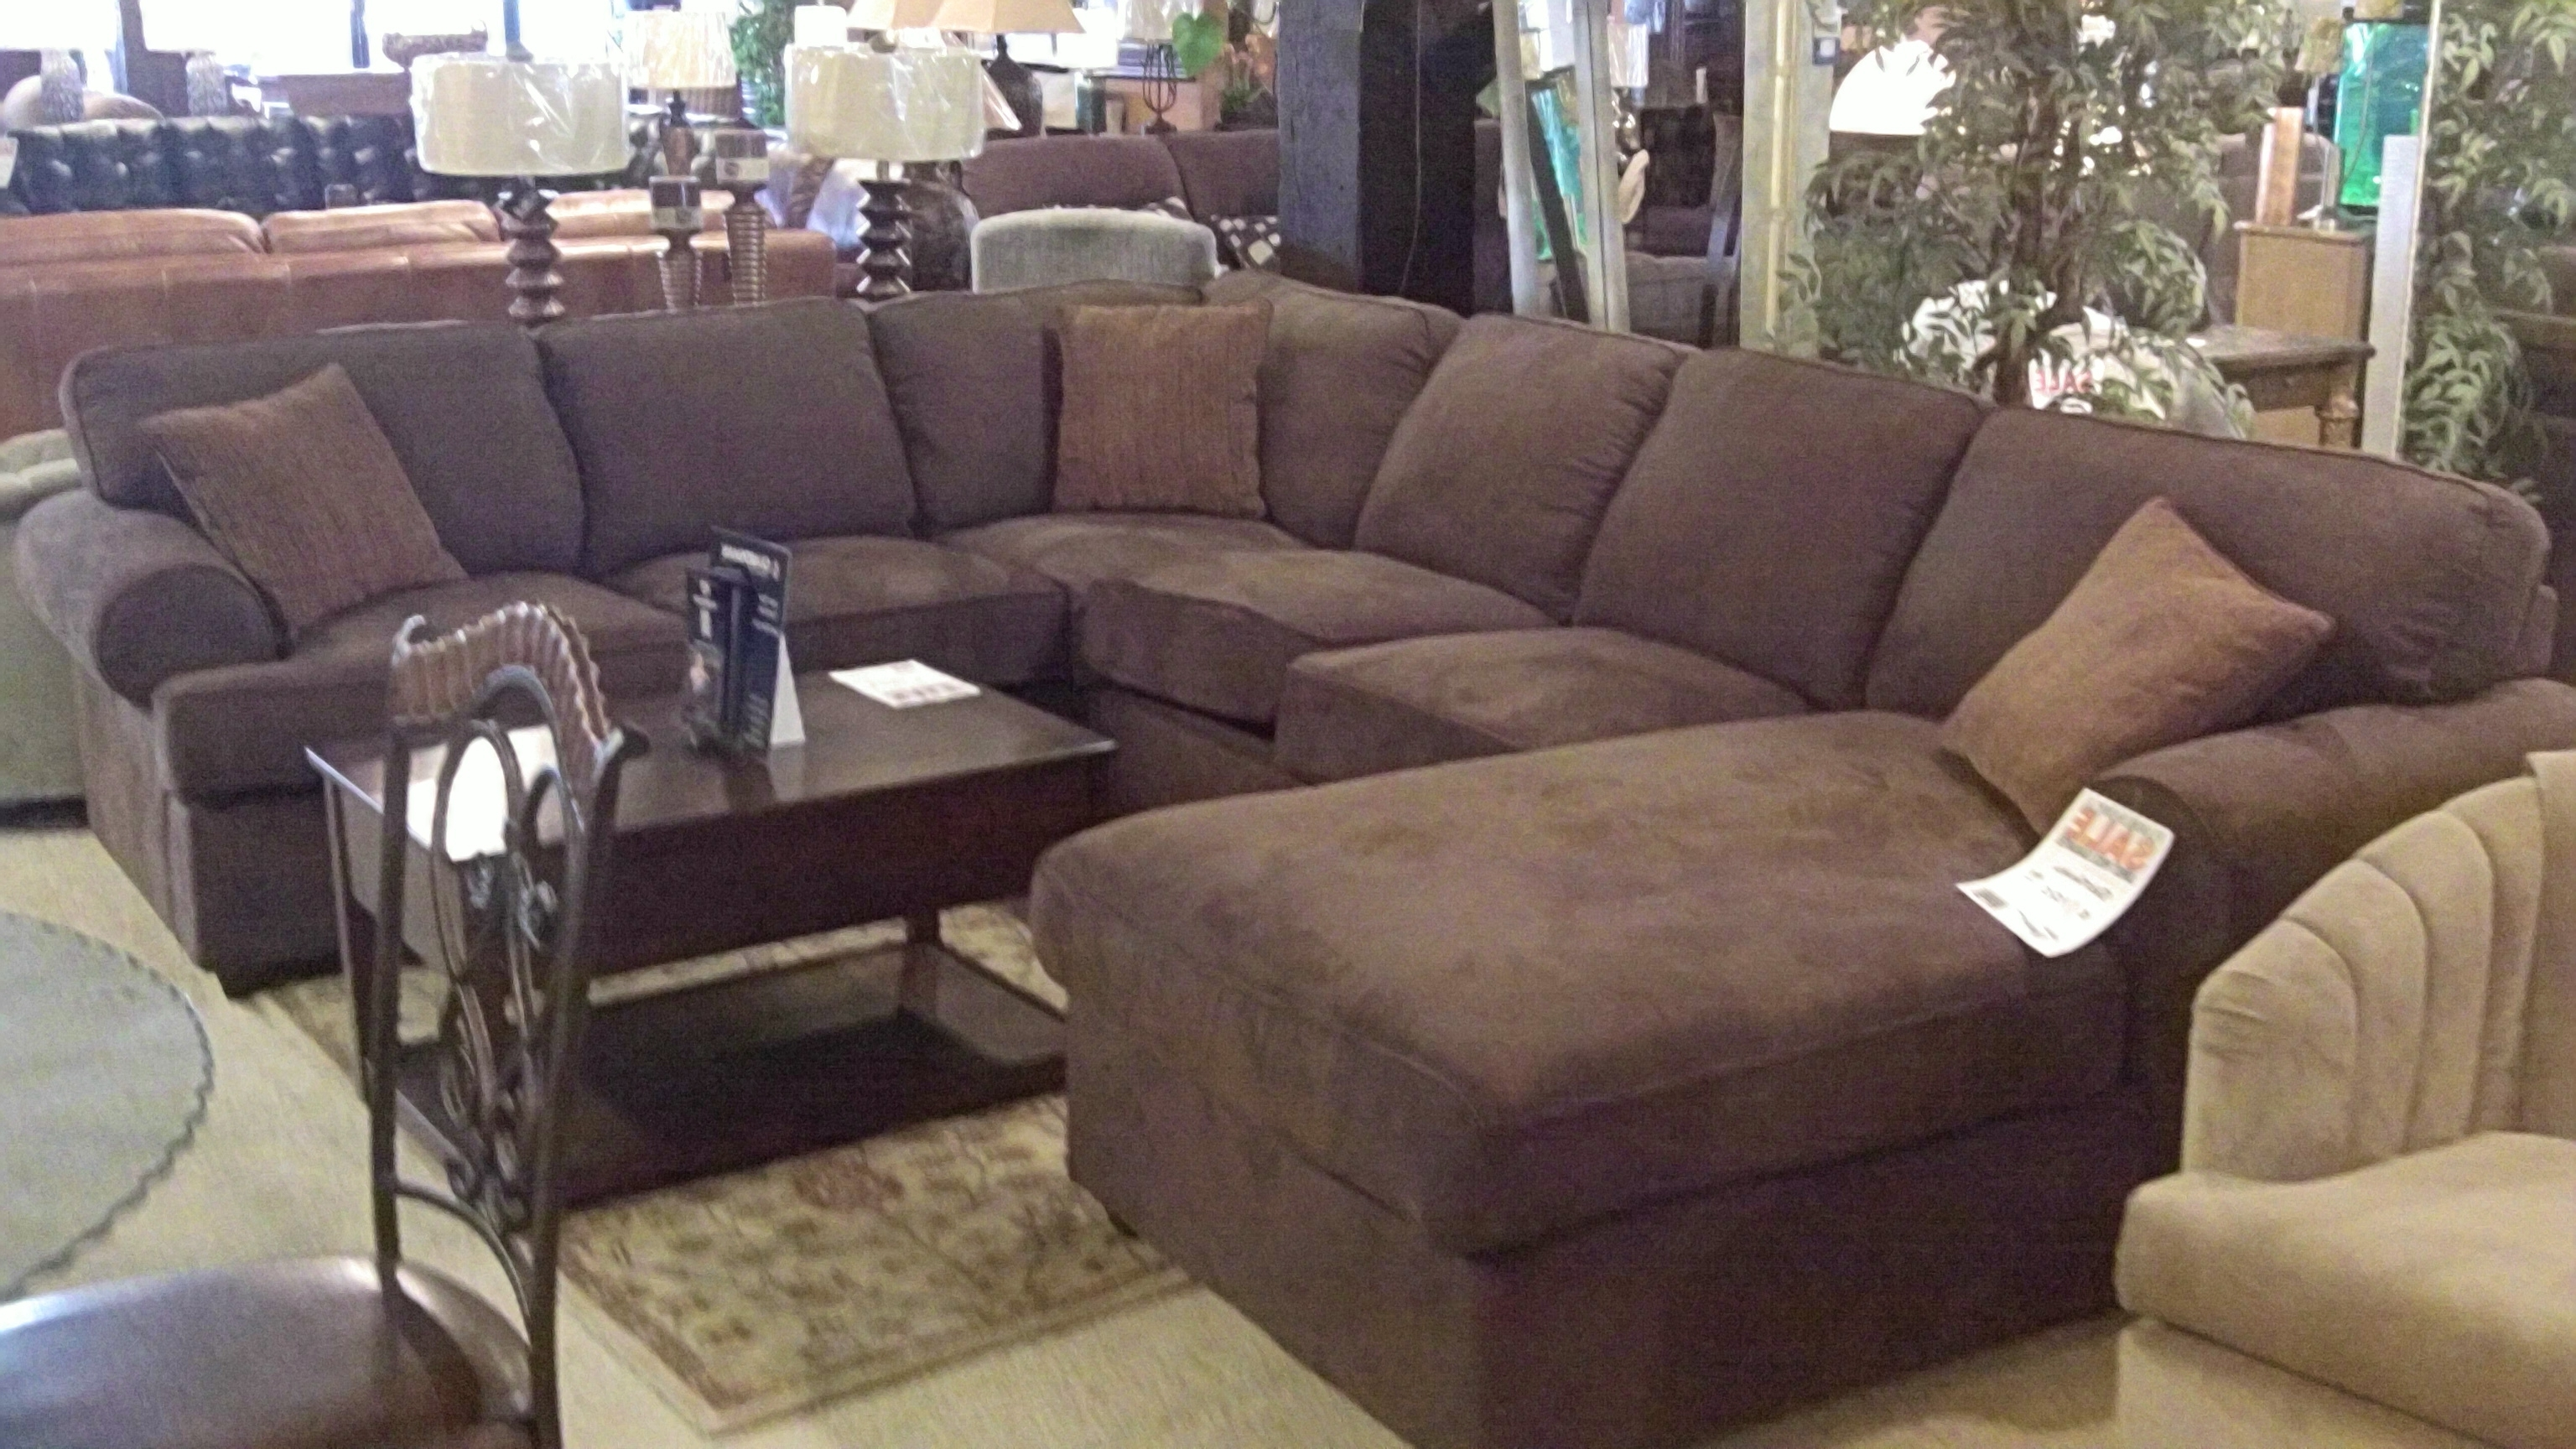 Fashionable Home Design : Cool Best Modern Fabric Sectional Sofas With Chaise Inside Green Sectional Sofas With Chaise (View 4 of 15)